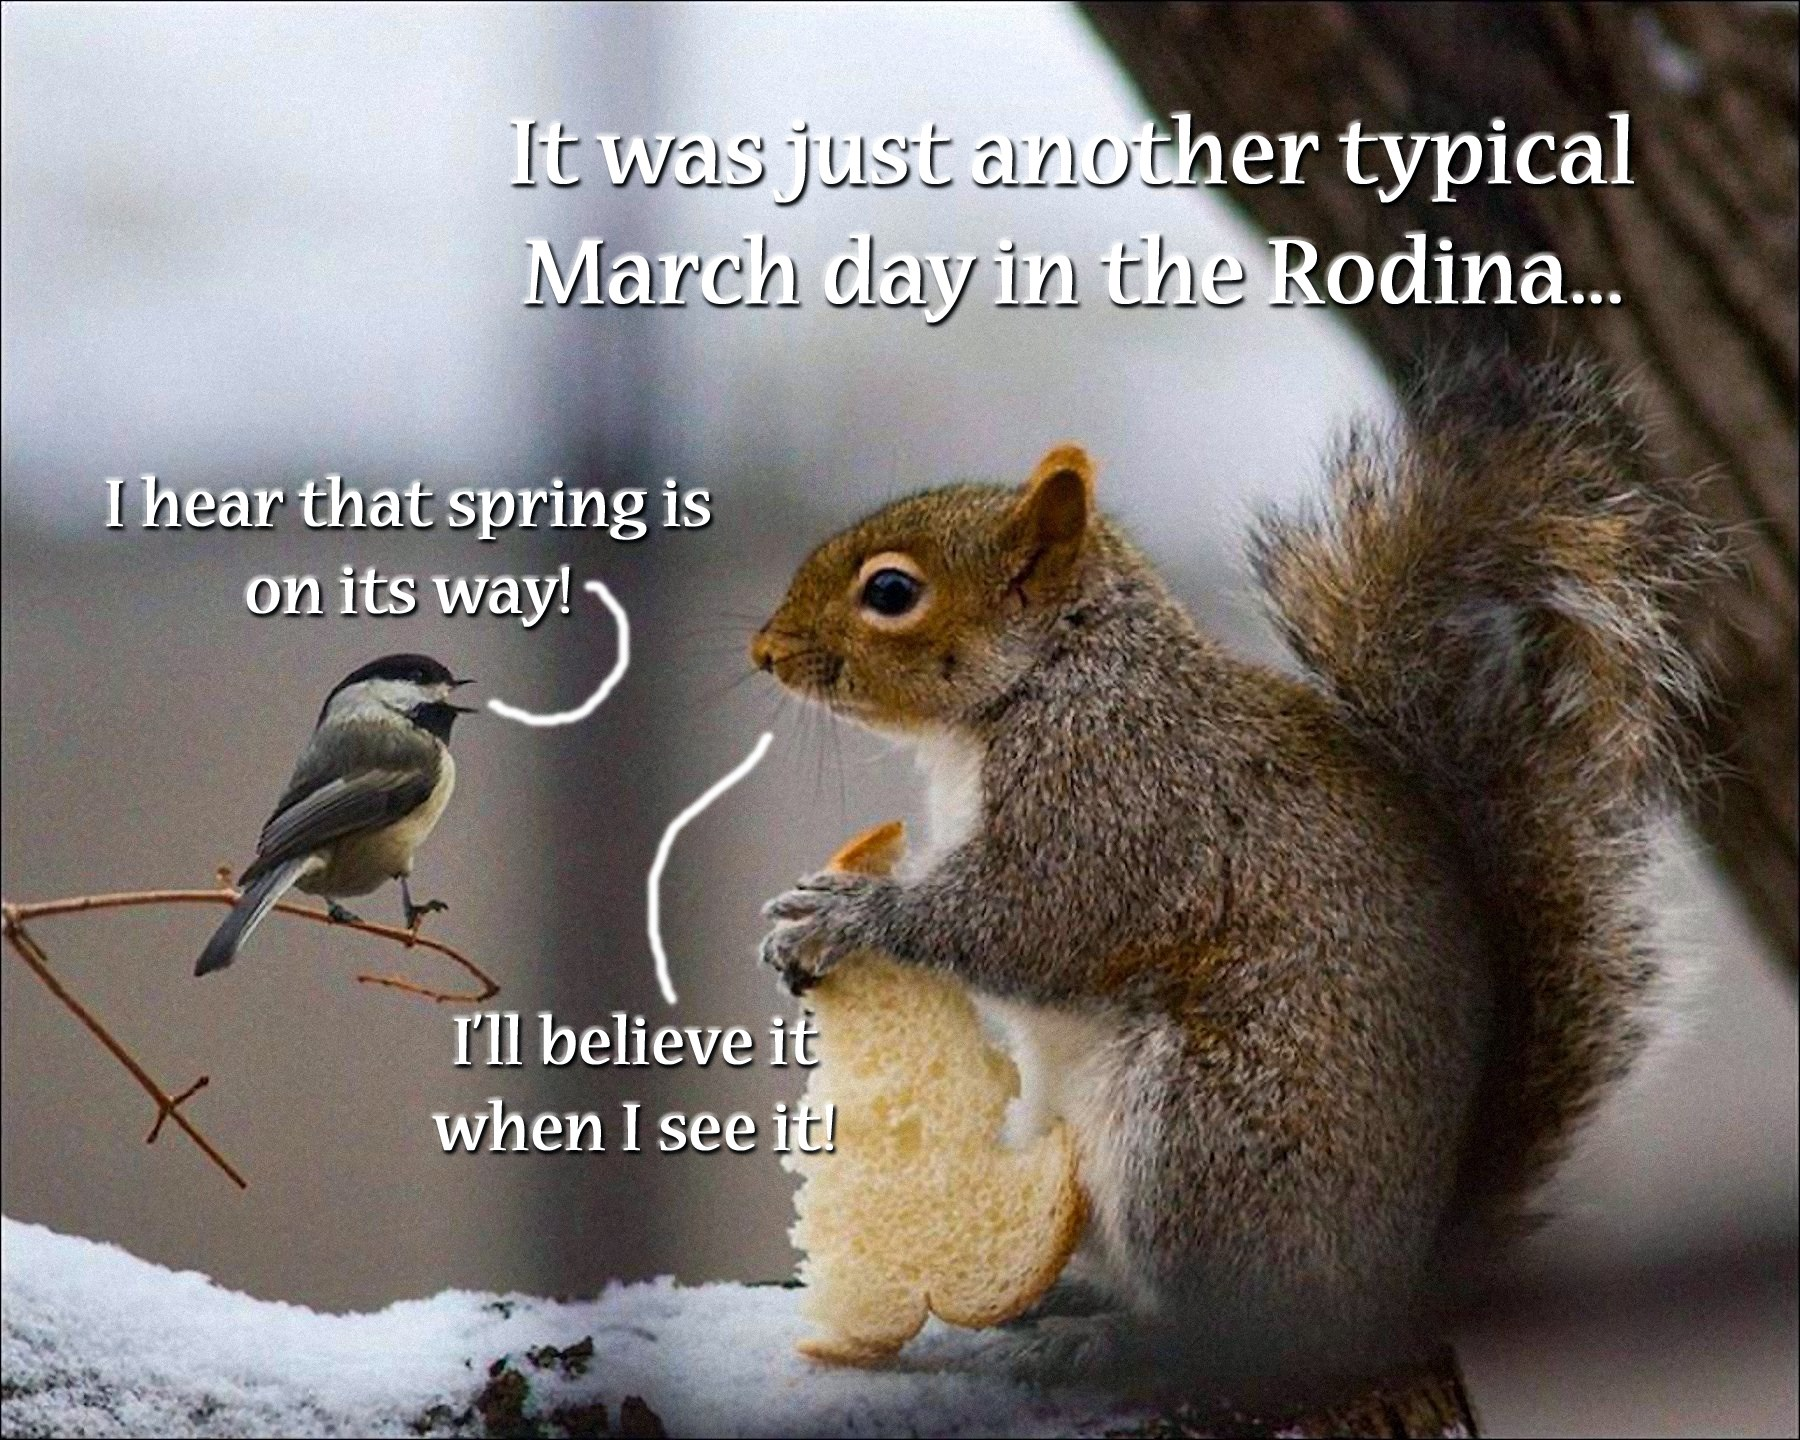 00 bird and squirrel 090316